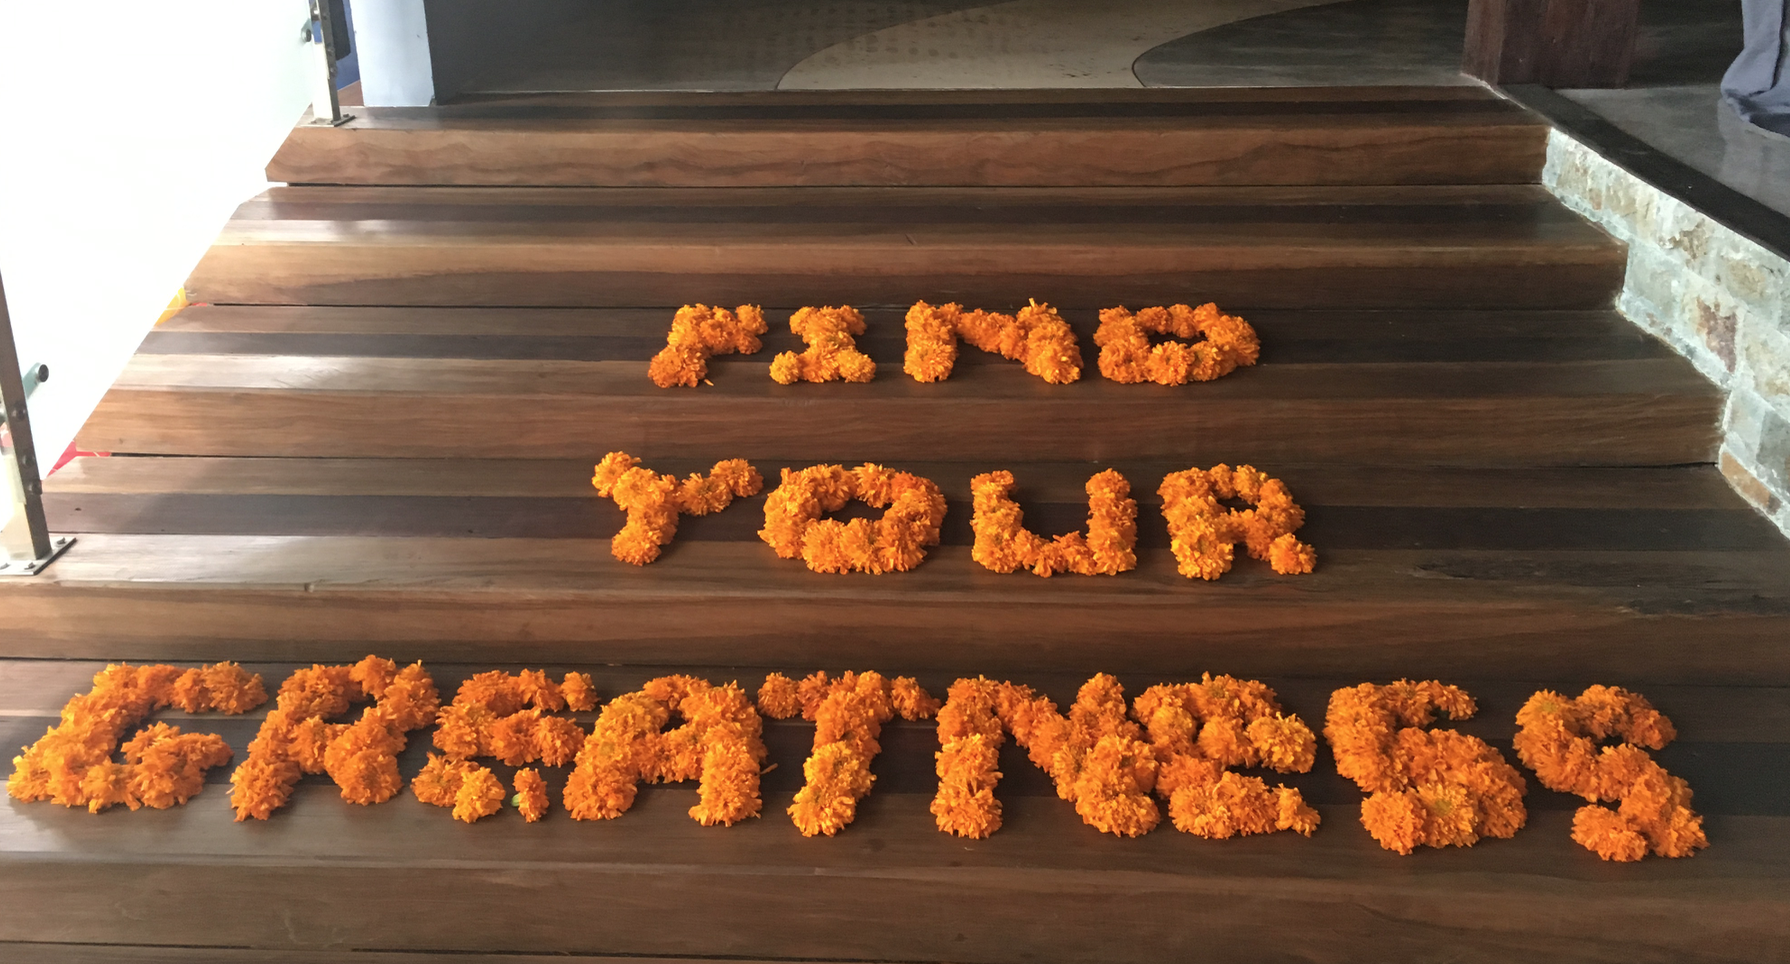 find-your-greatness-marigolds-bali